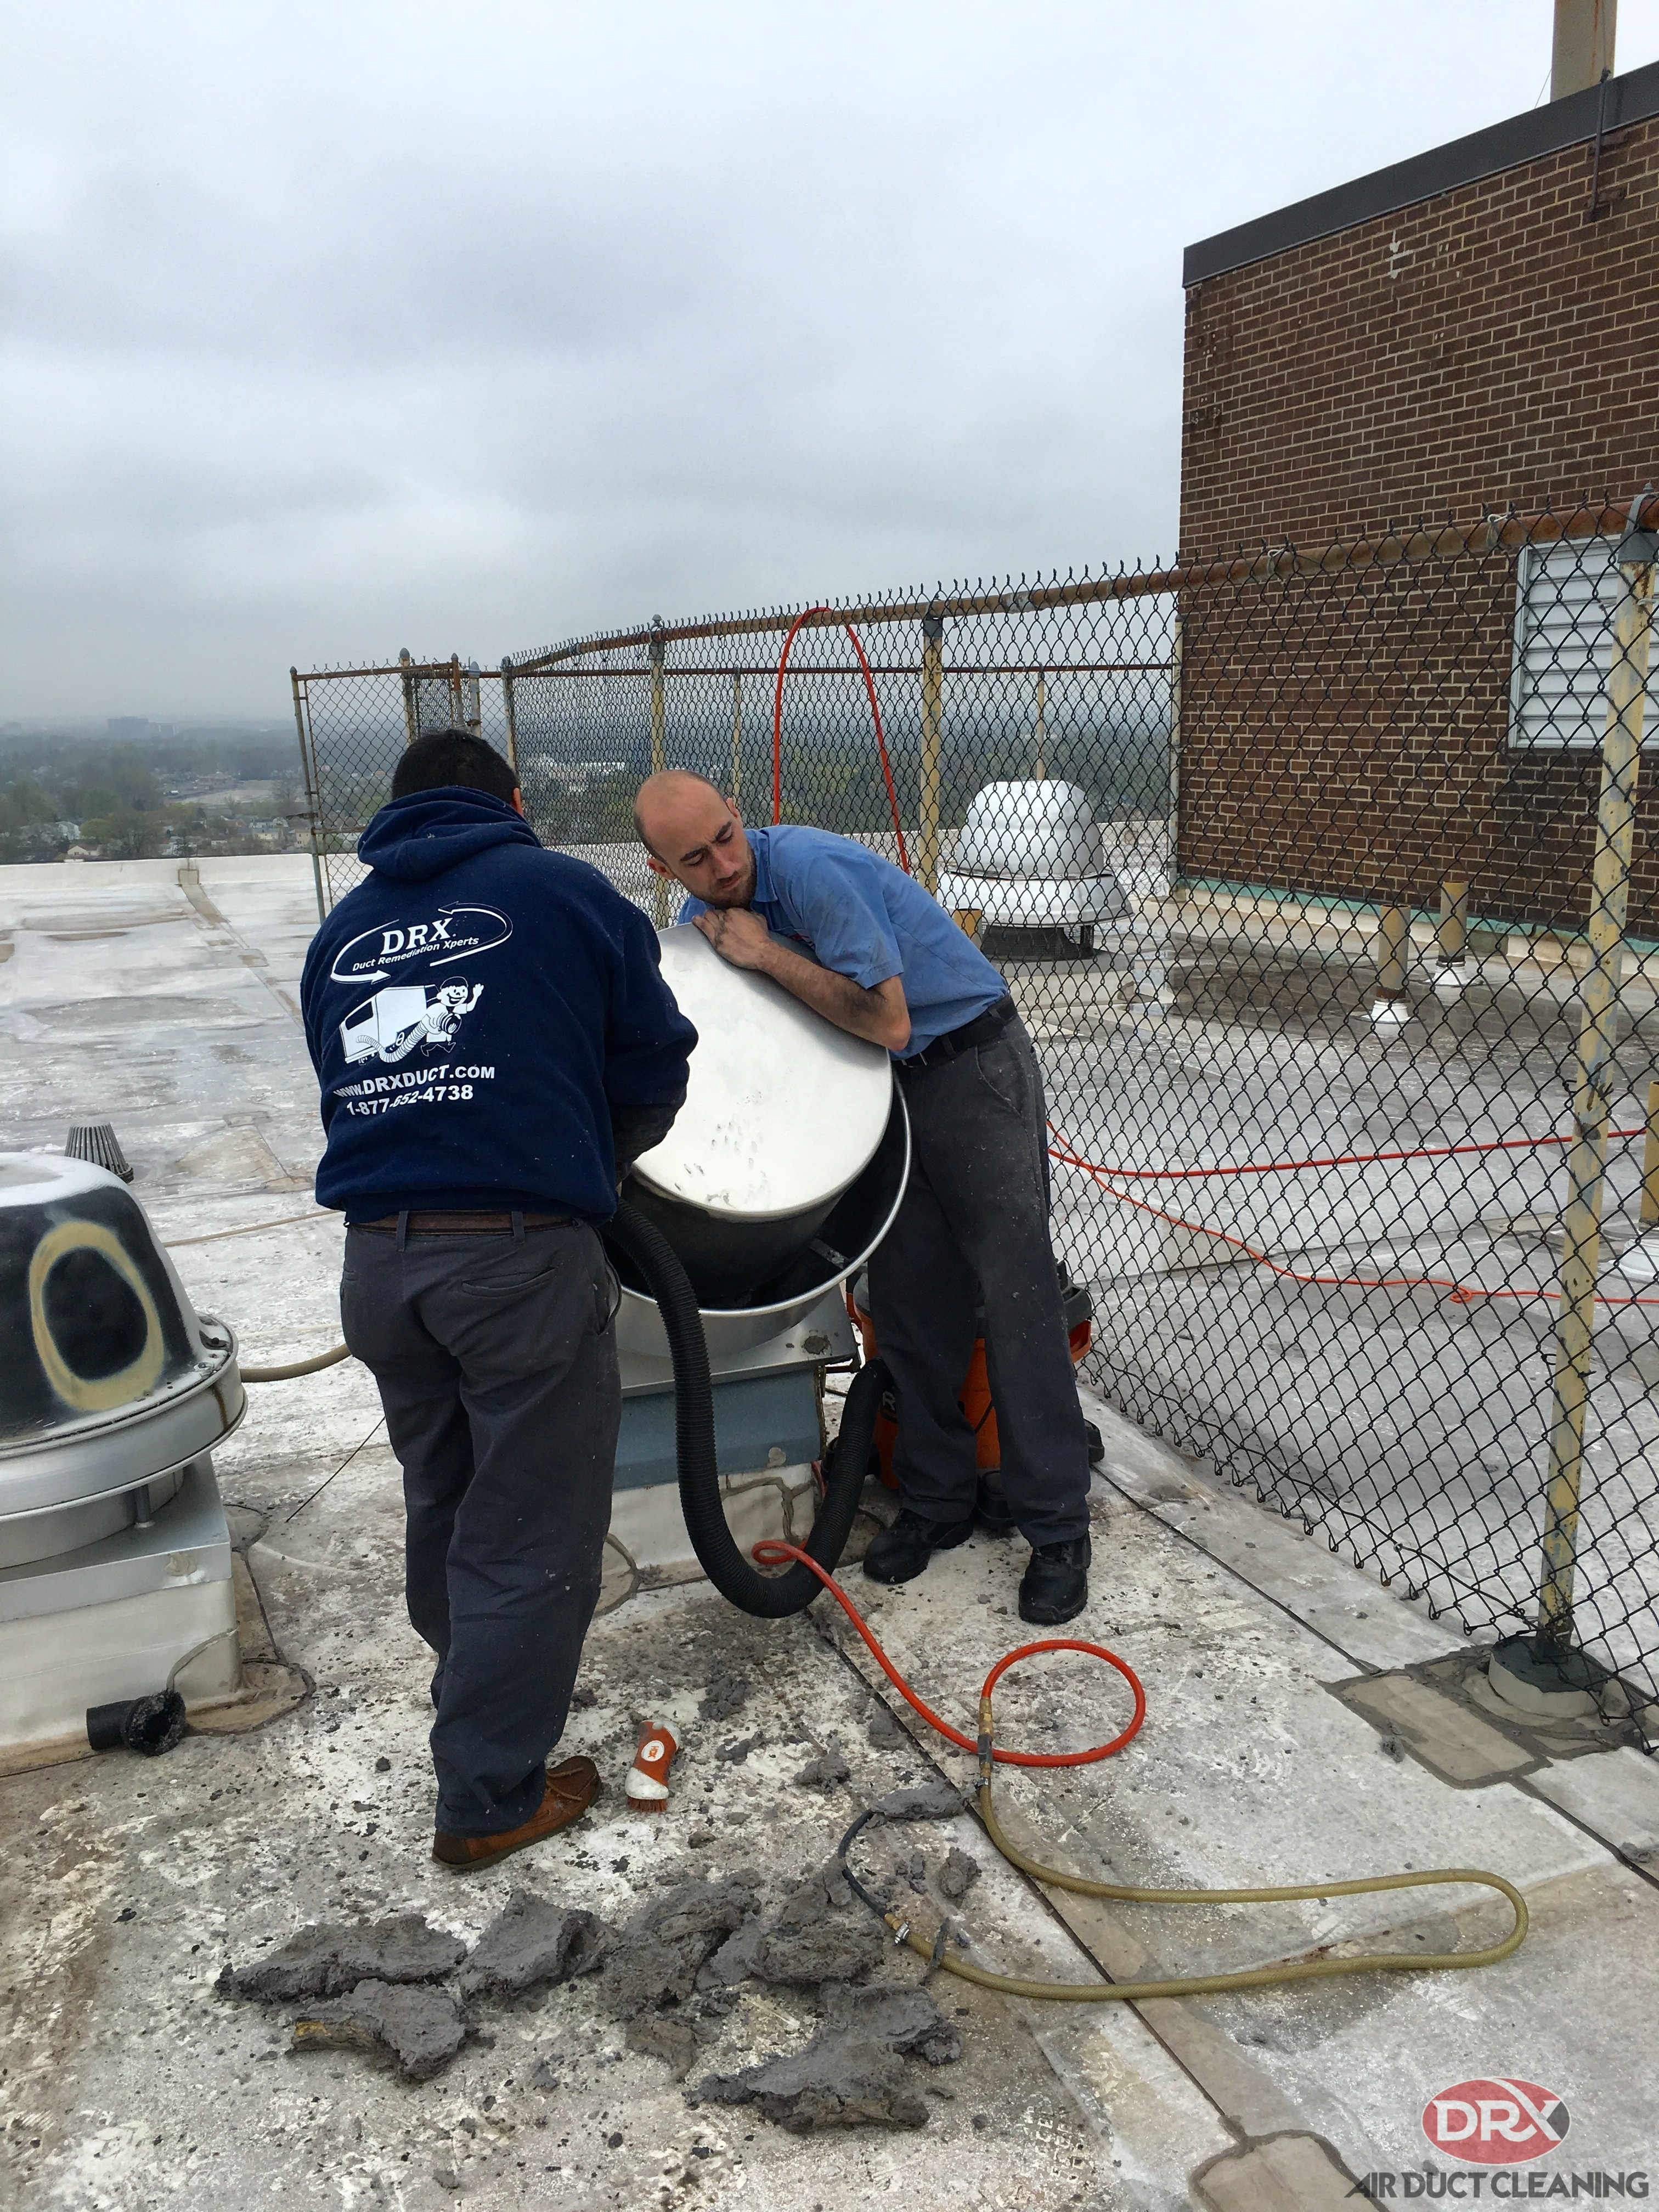 Two professionals working together to clean ductwork